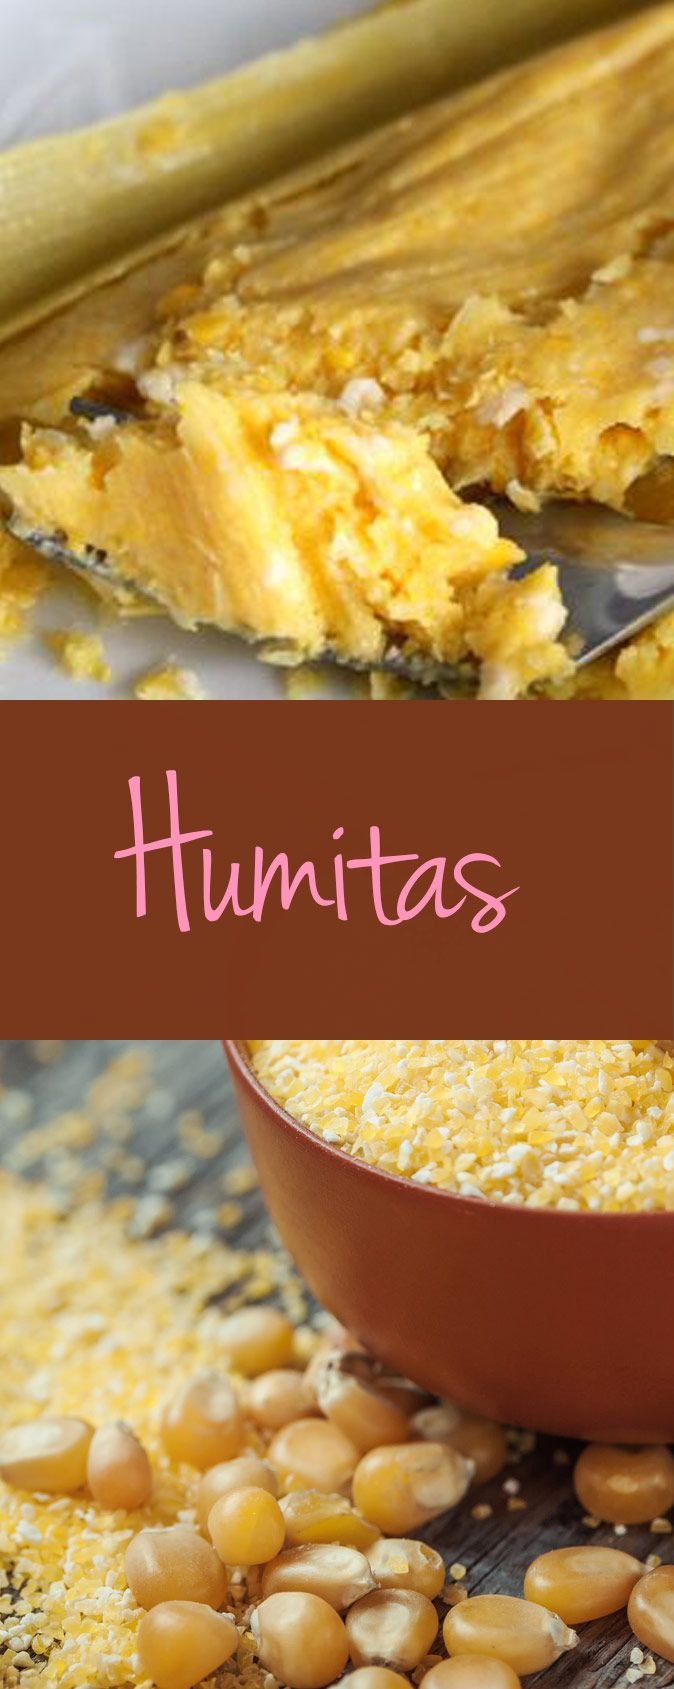 Humitas: A traditional Ecuadorian dinner.